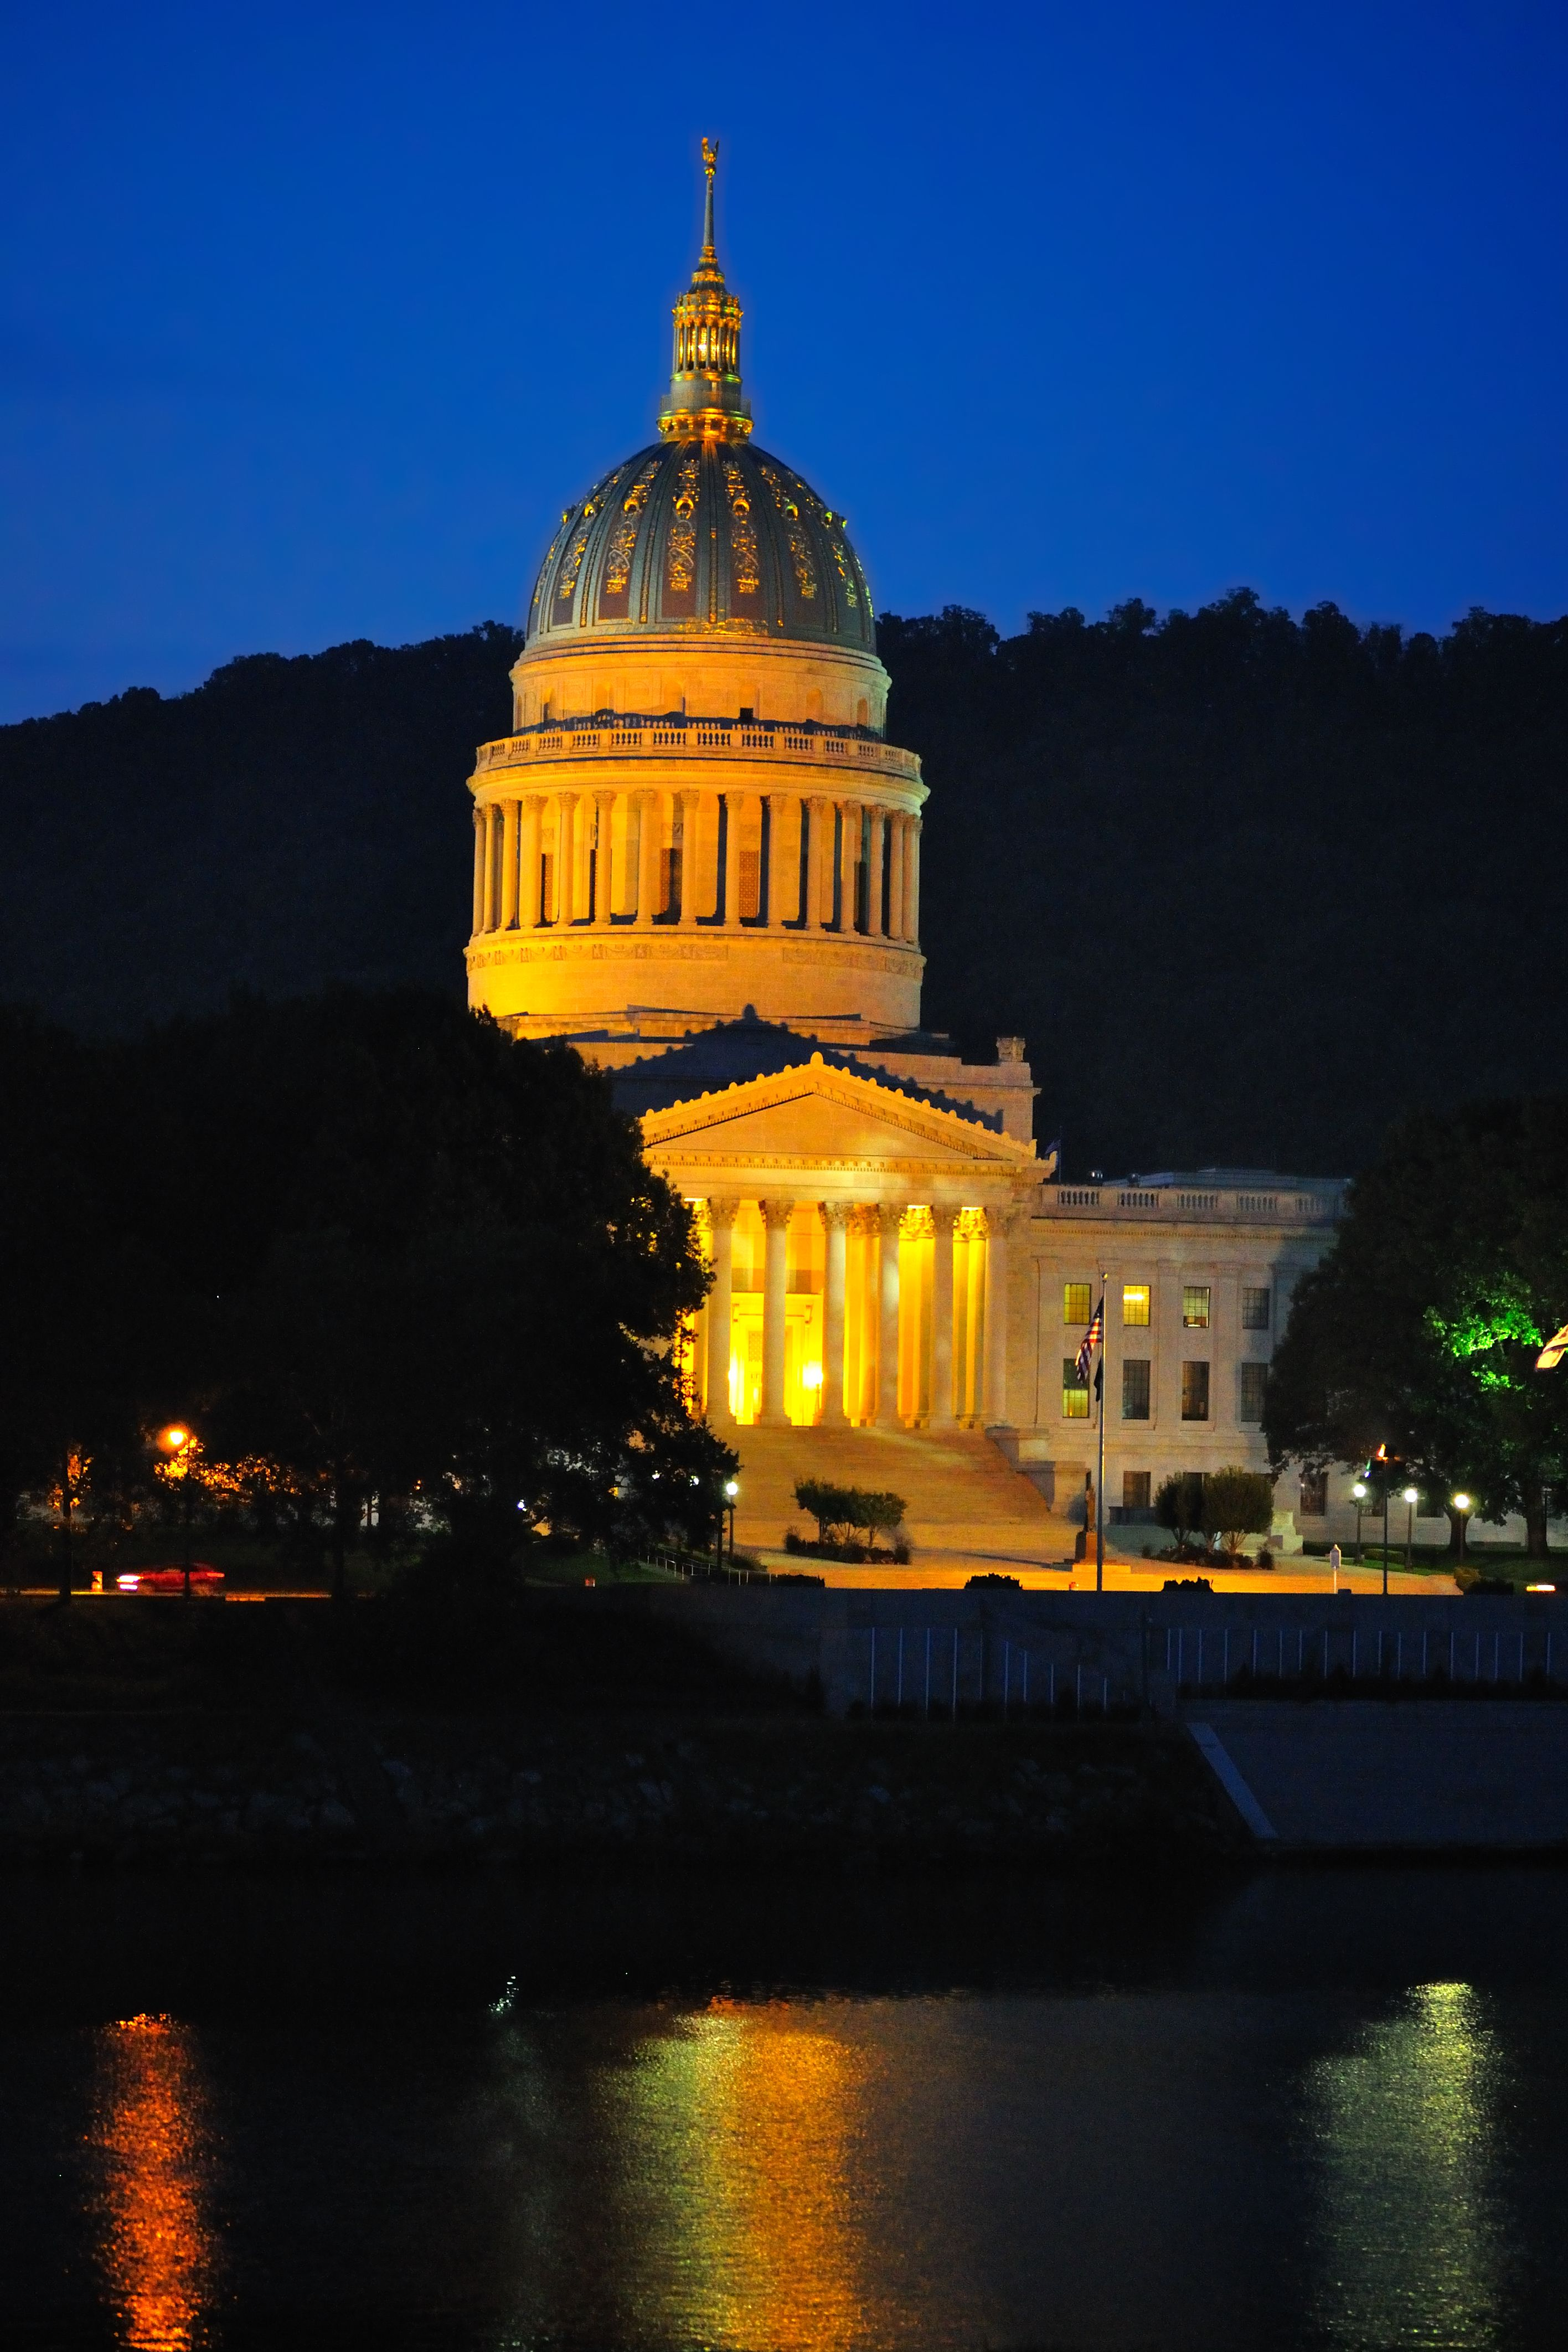 Wv State Capital at night